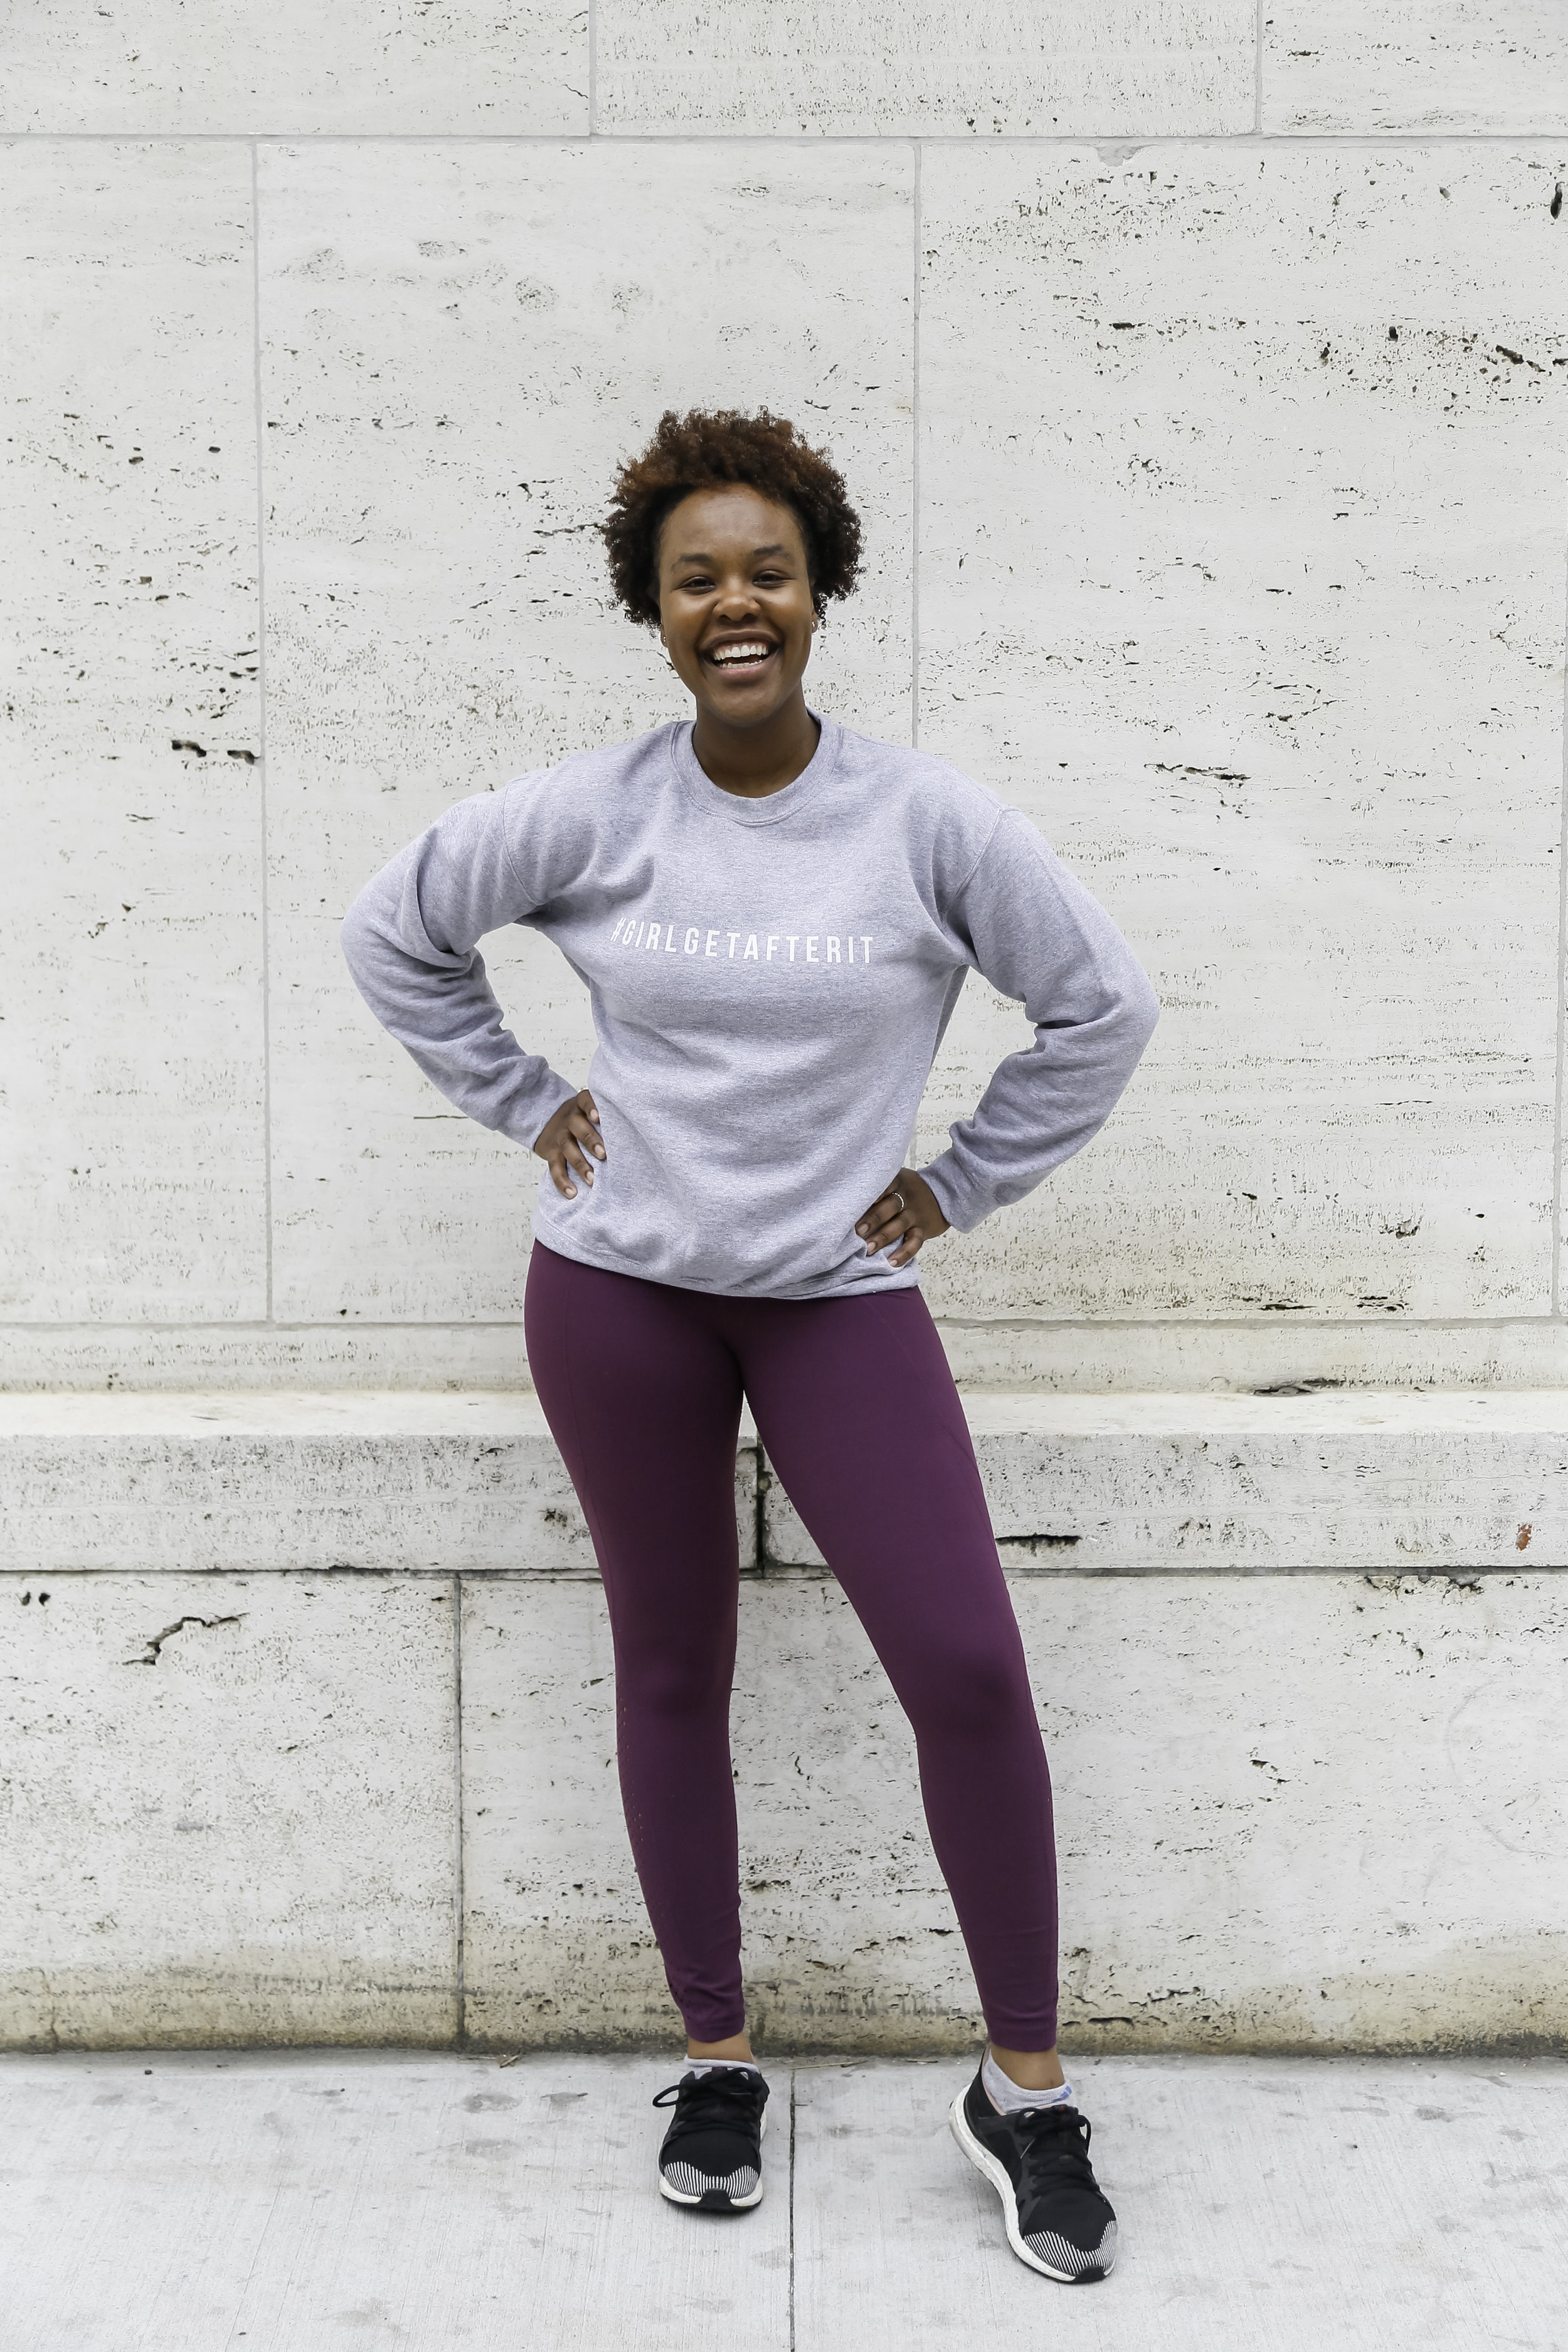 an interview with yoga instructor shanna tyler on loving herself, nurturing her soul, and living her sport in new york city